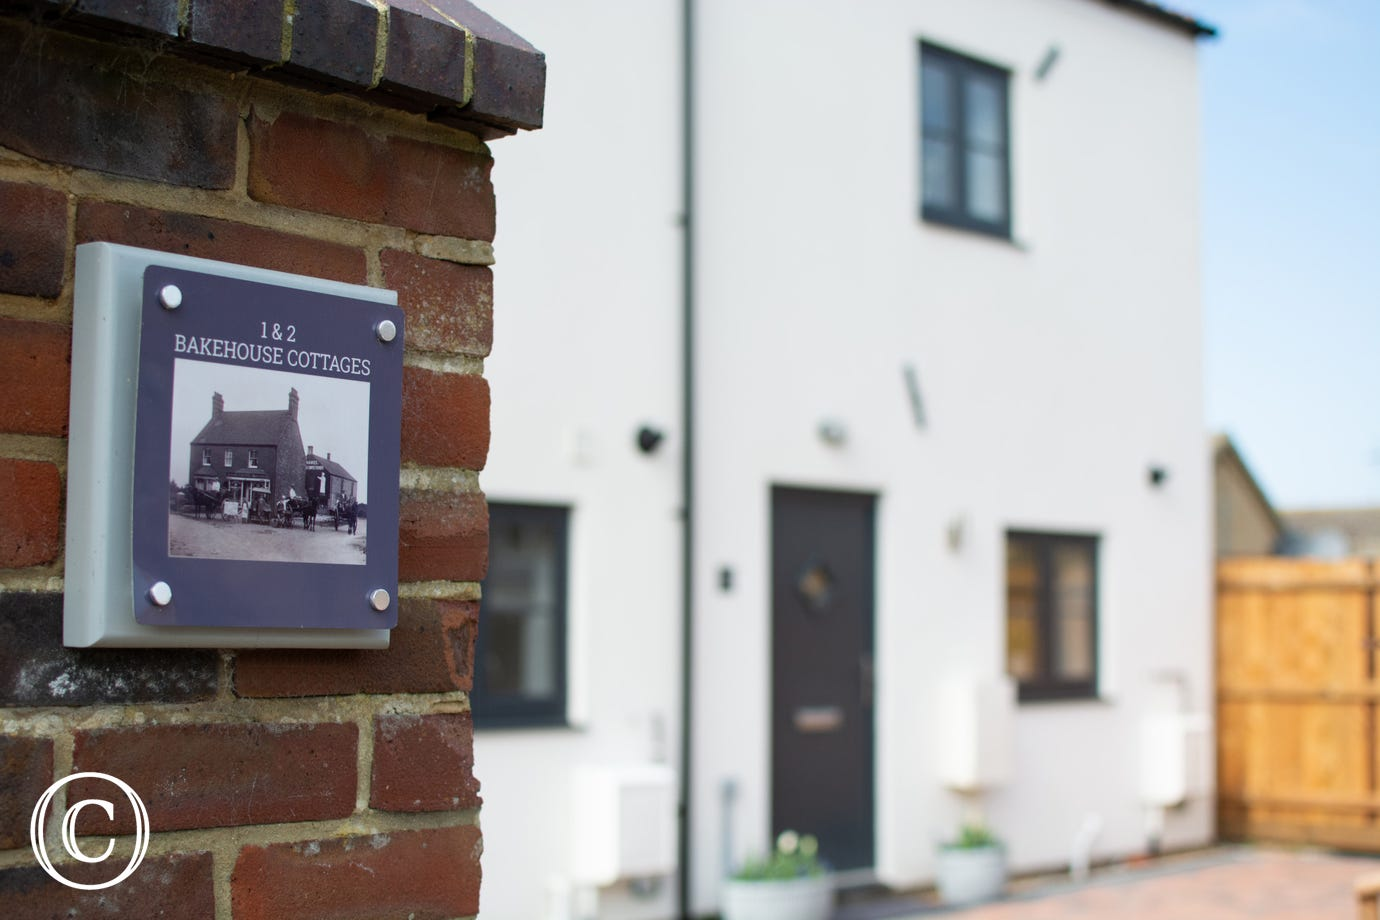 Nameplate for 1 & 2 Bakehouse Cottages